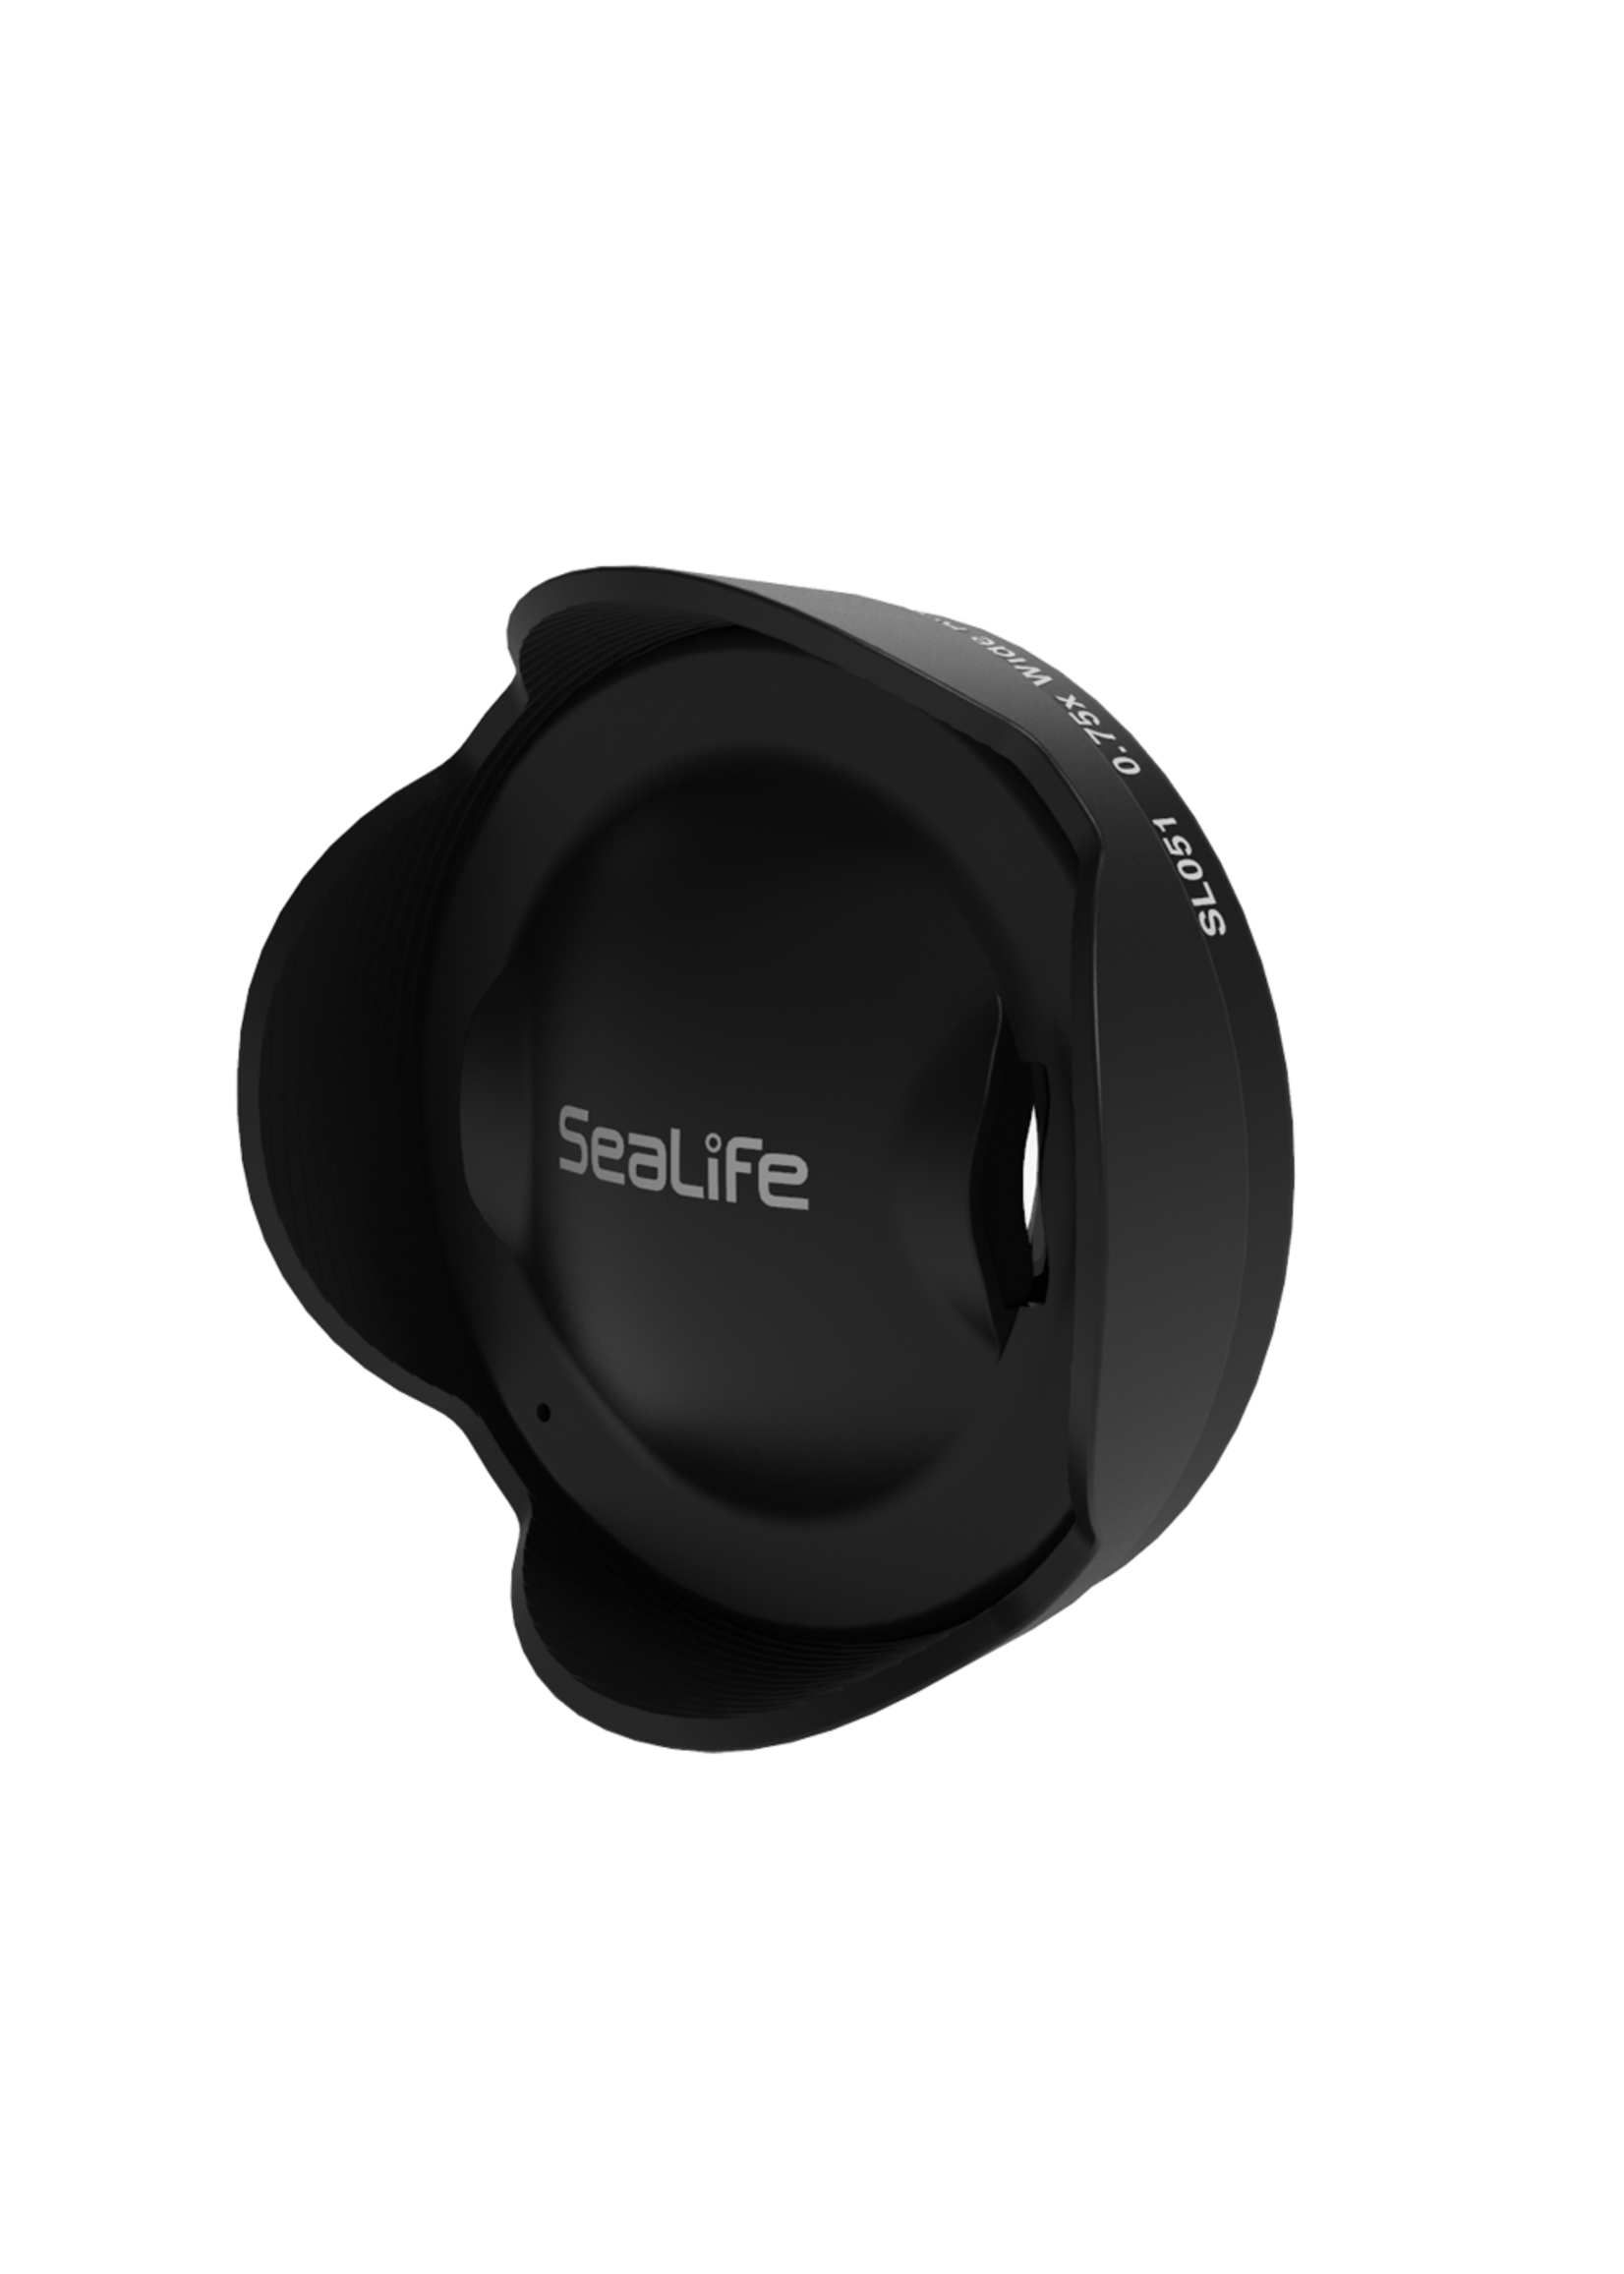 Sealife Sea Life 0.75x Wide Angle Conversion Lens for DC-Series Cameras